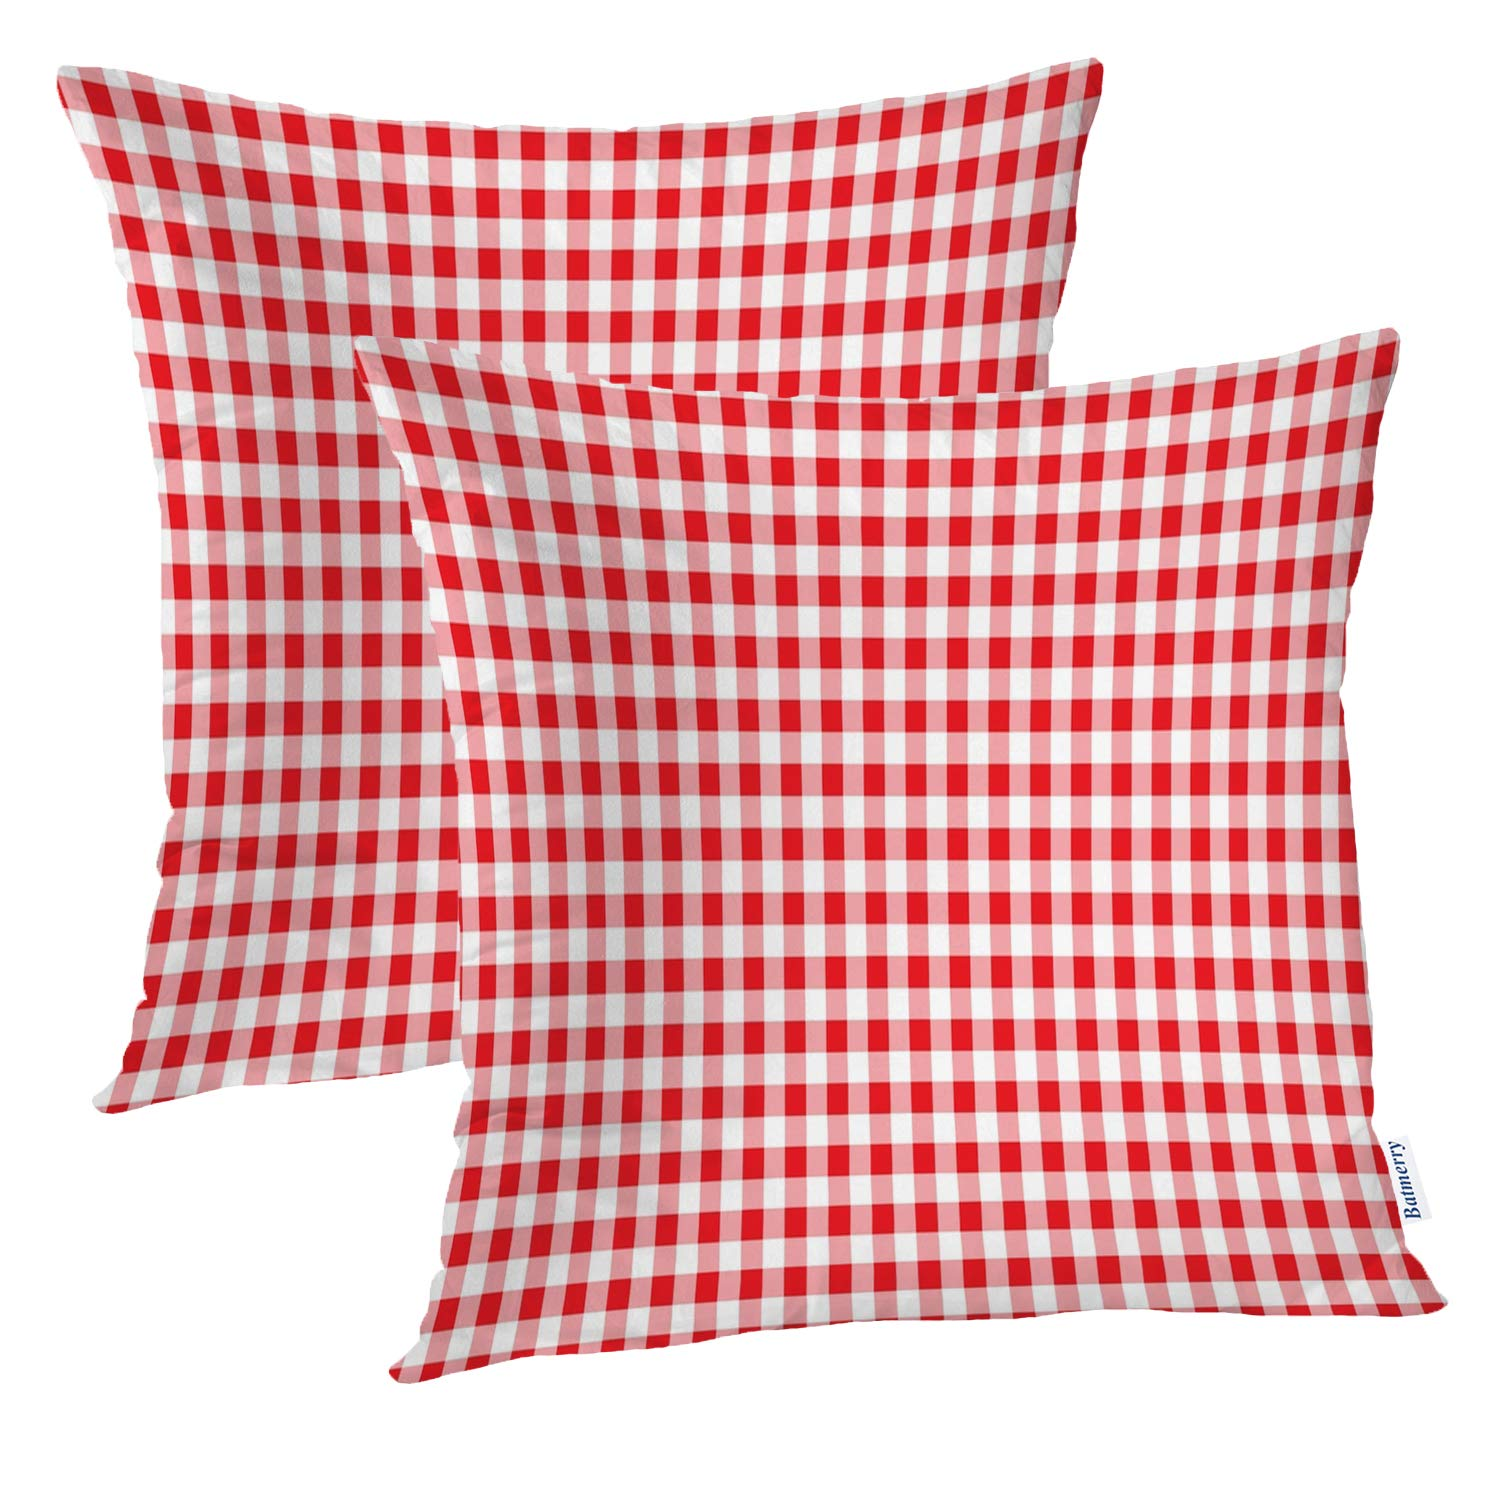 Batmerry Gingham Pillow Covers 18x18 Inch Set Of 2 Red Gingham Checker Checked Checkered Pattern Double Sided Decorative Pillows Cases Throw Pillows Covers Home Kitchen